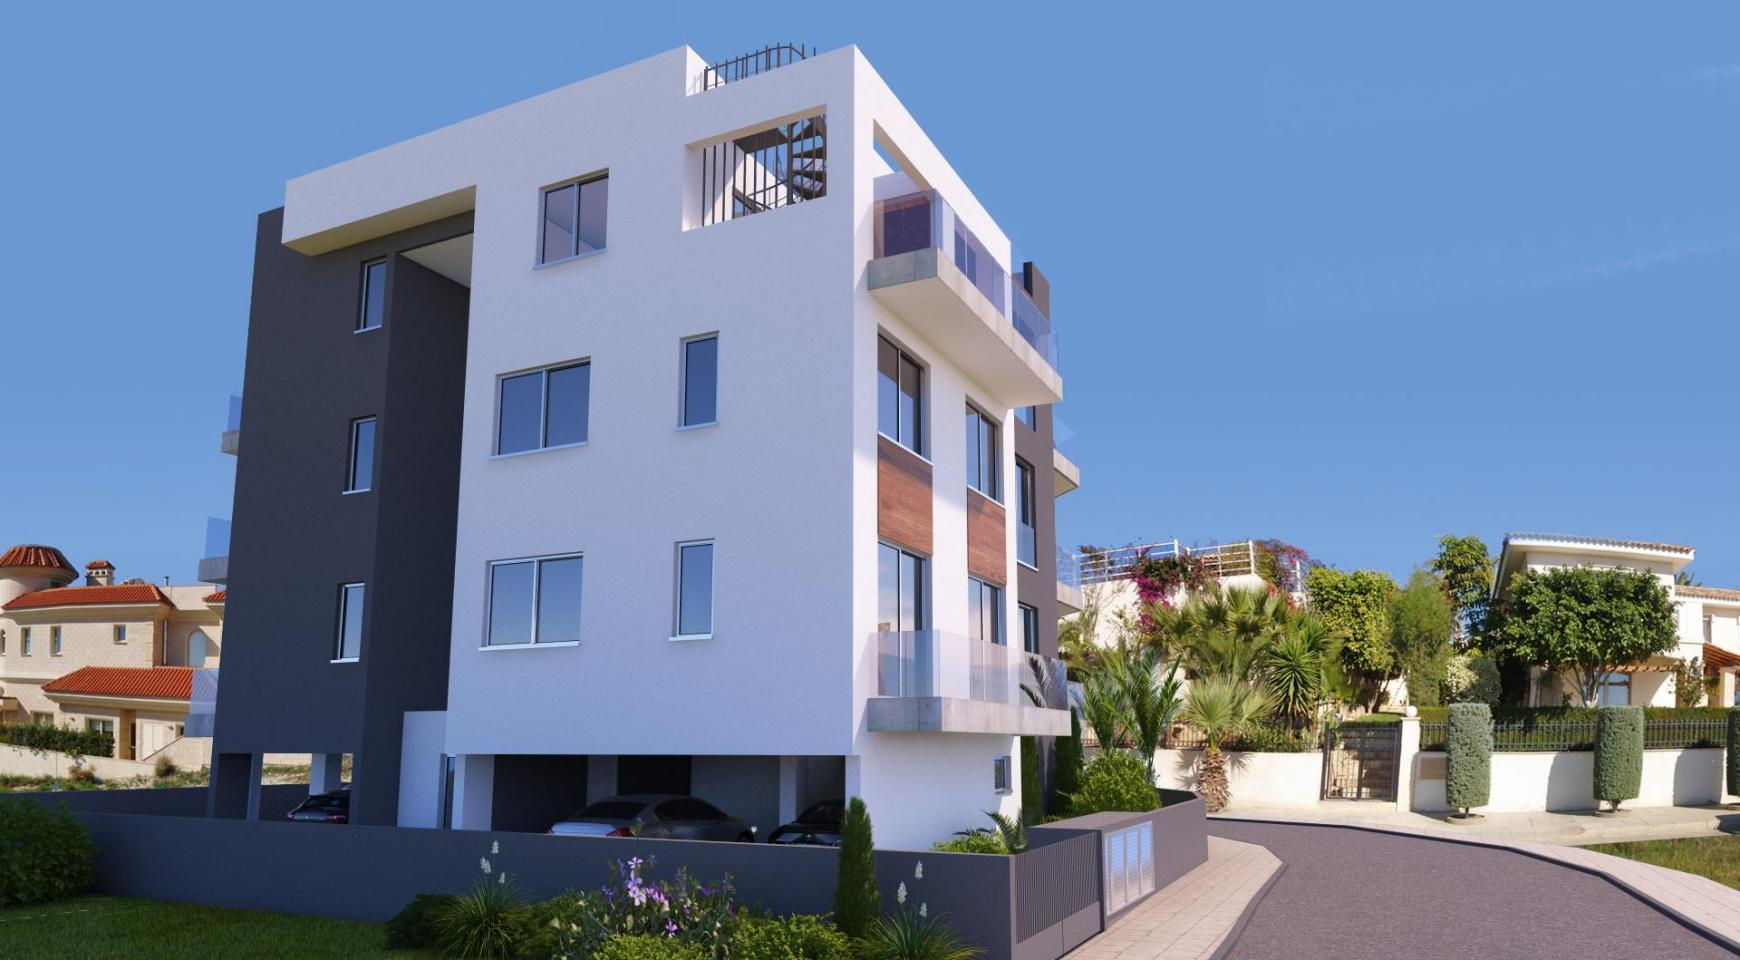 New 3 Bedroom Apartment in a Contemporay Building in Potamos Germasogeia - 4